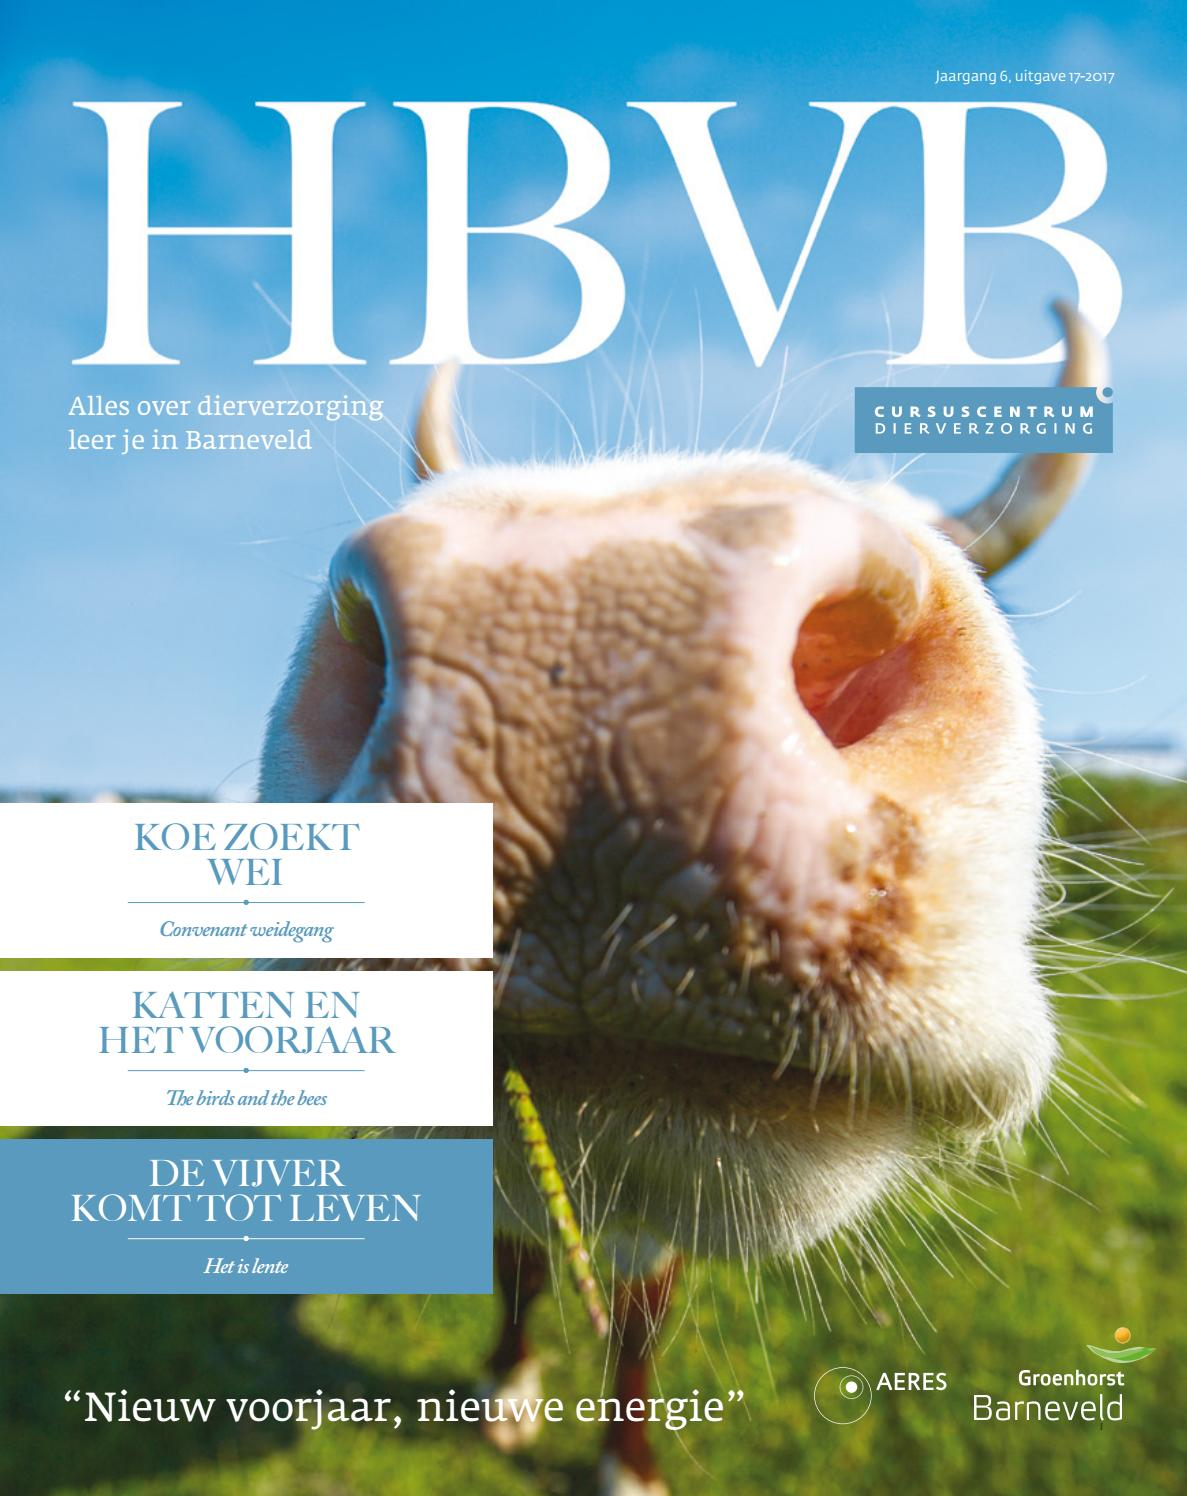 HBVB magazine - uitgave 17-2016 by Aeres Training Centre